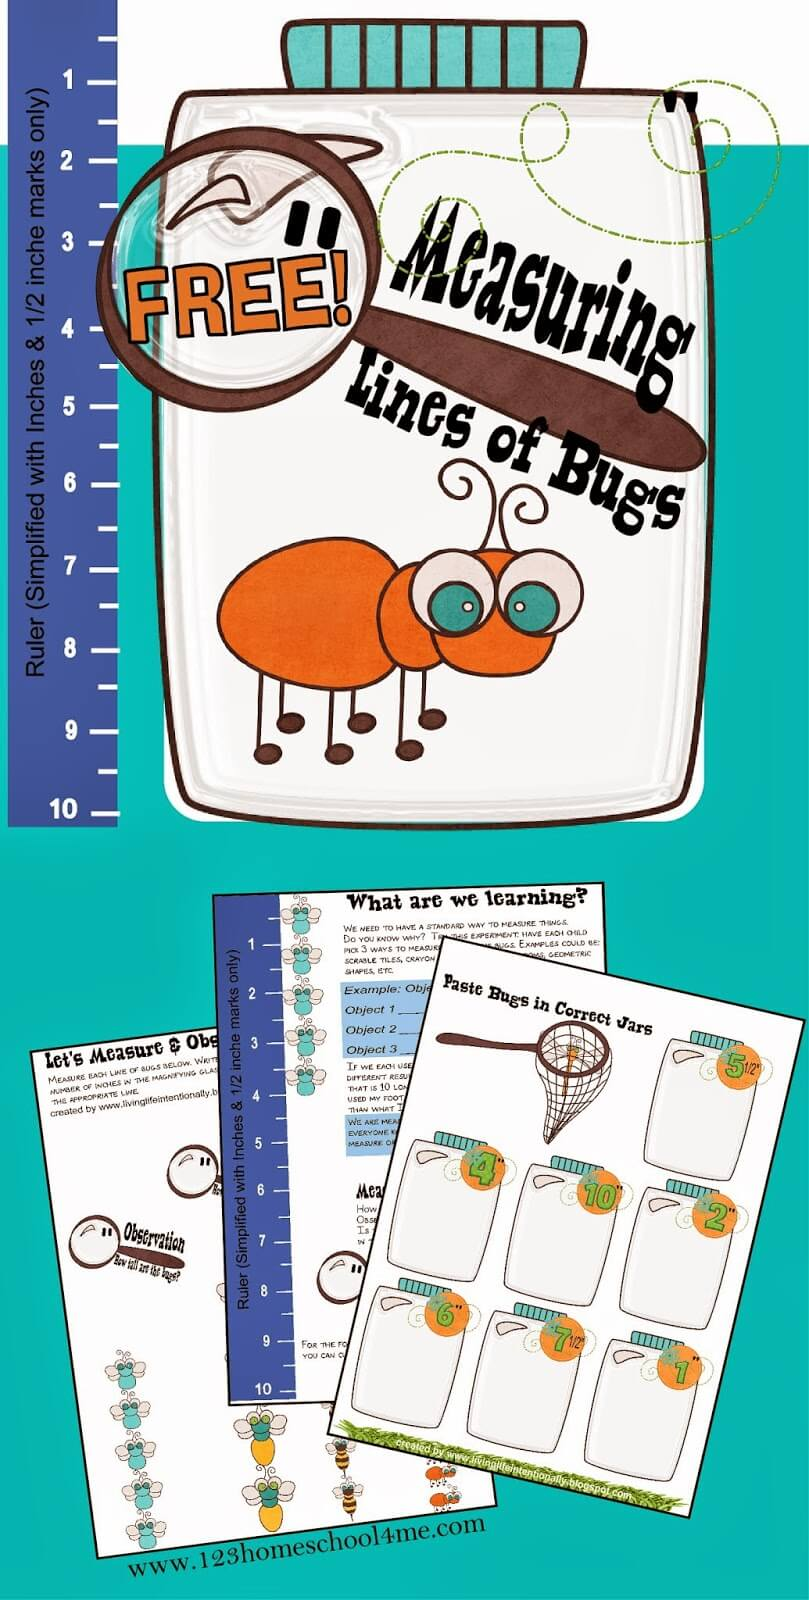 hight resolution of FREE Measuring Bugs